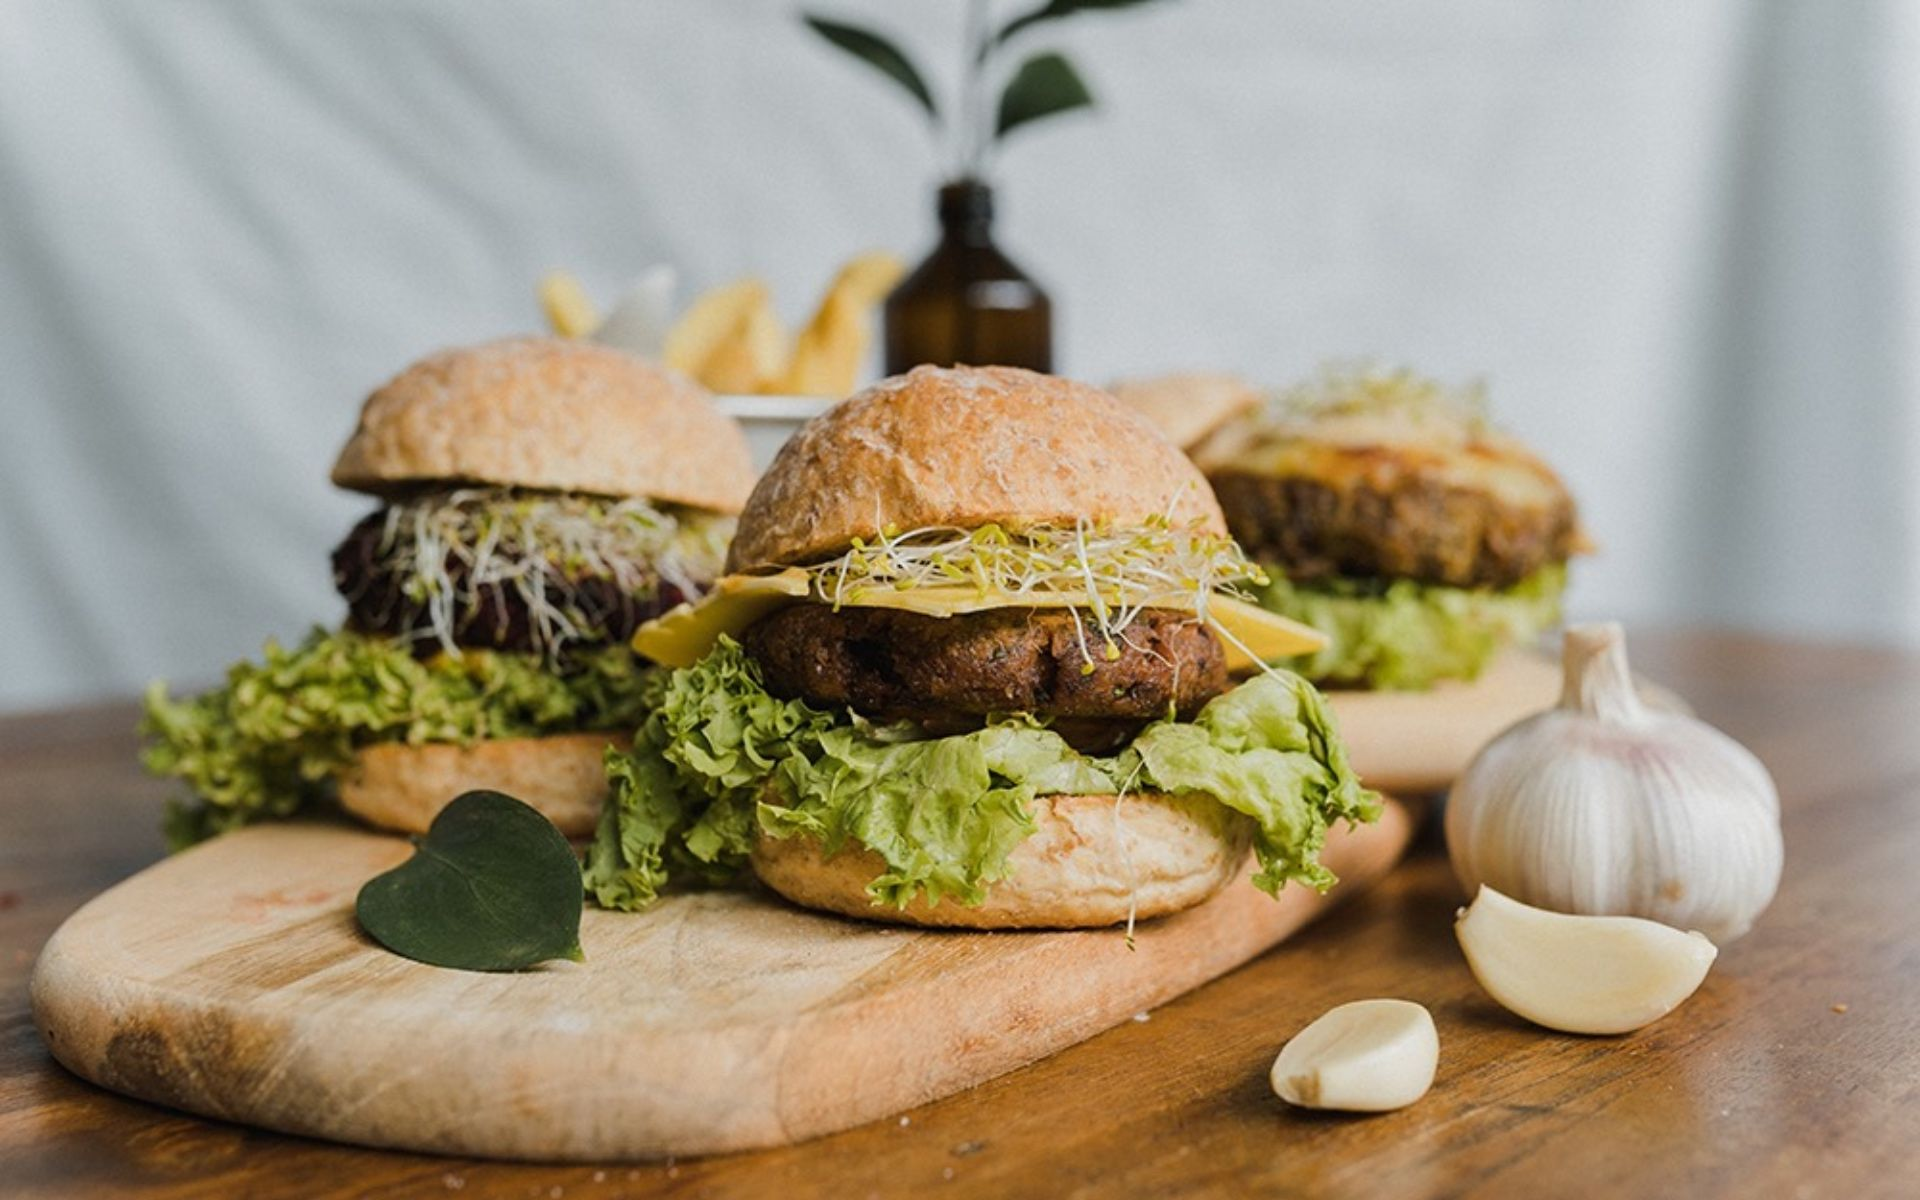 8 Plant-Based Burgers To Fulfil Your Fast Food Fantasies